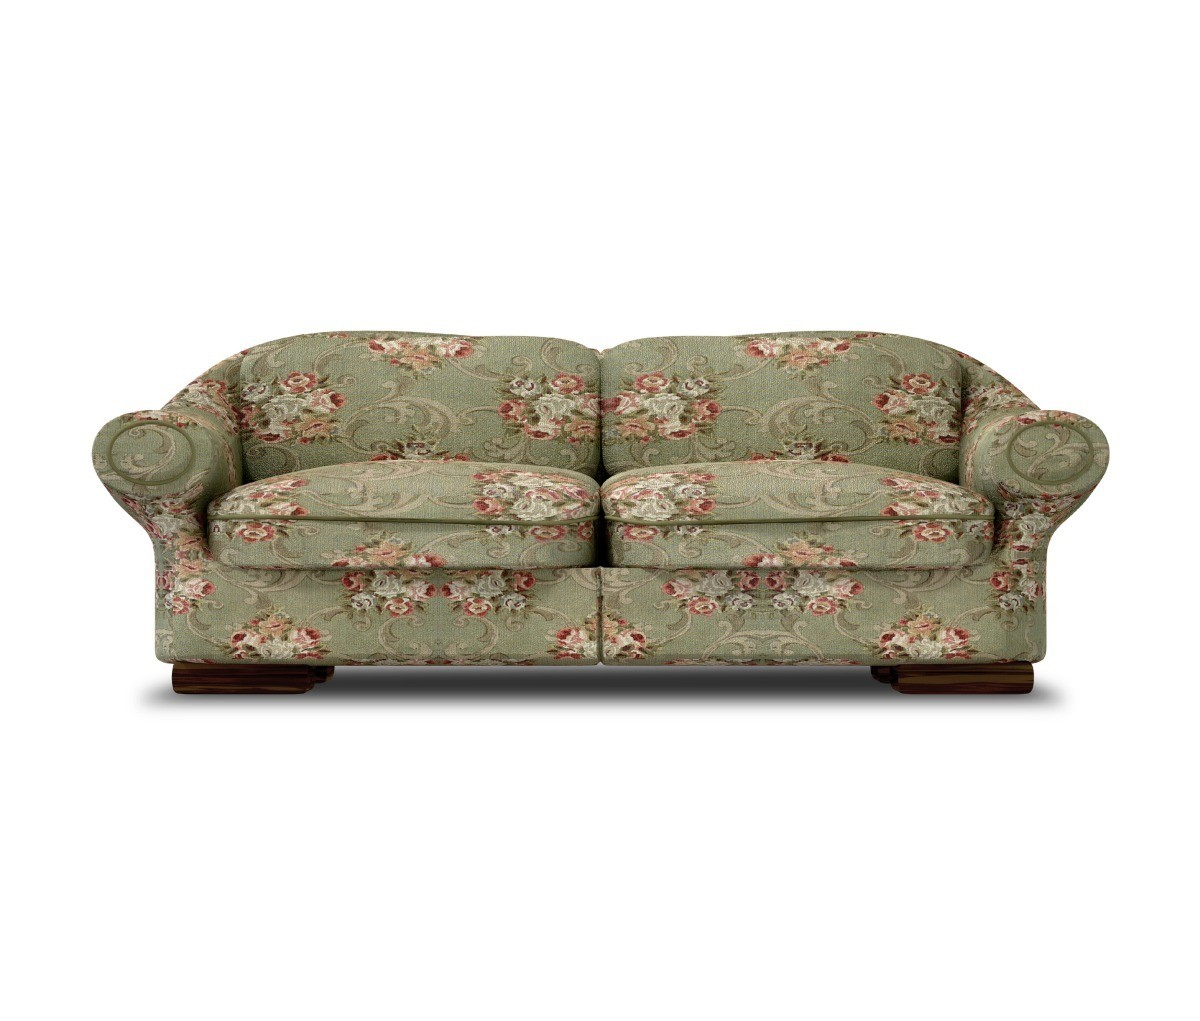 Removing Odors From A Couch Thriftyfun